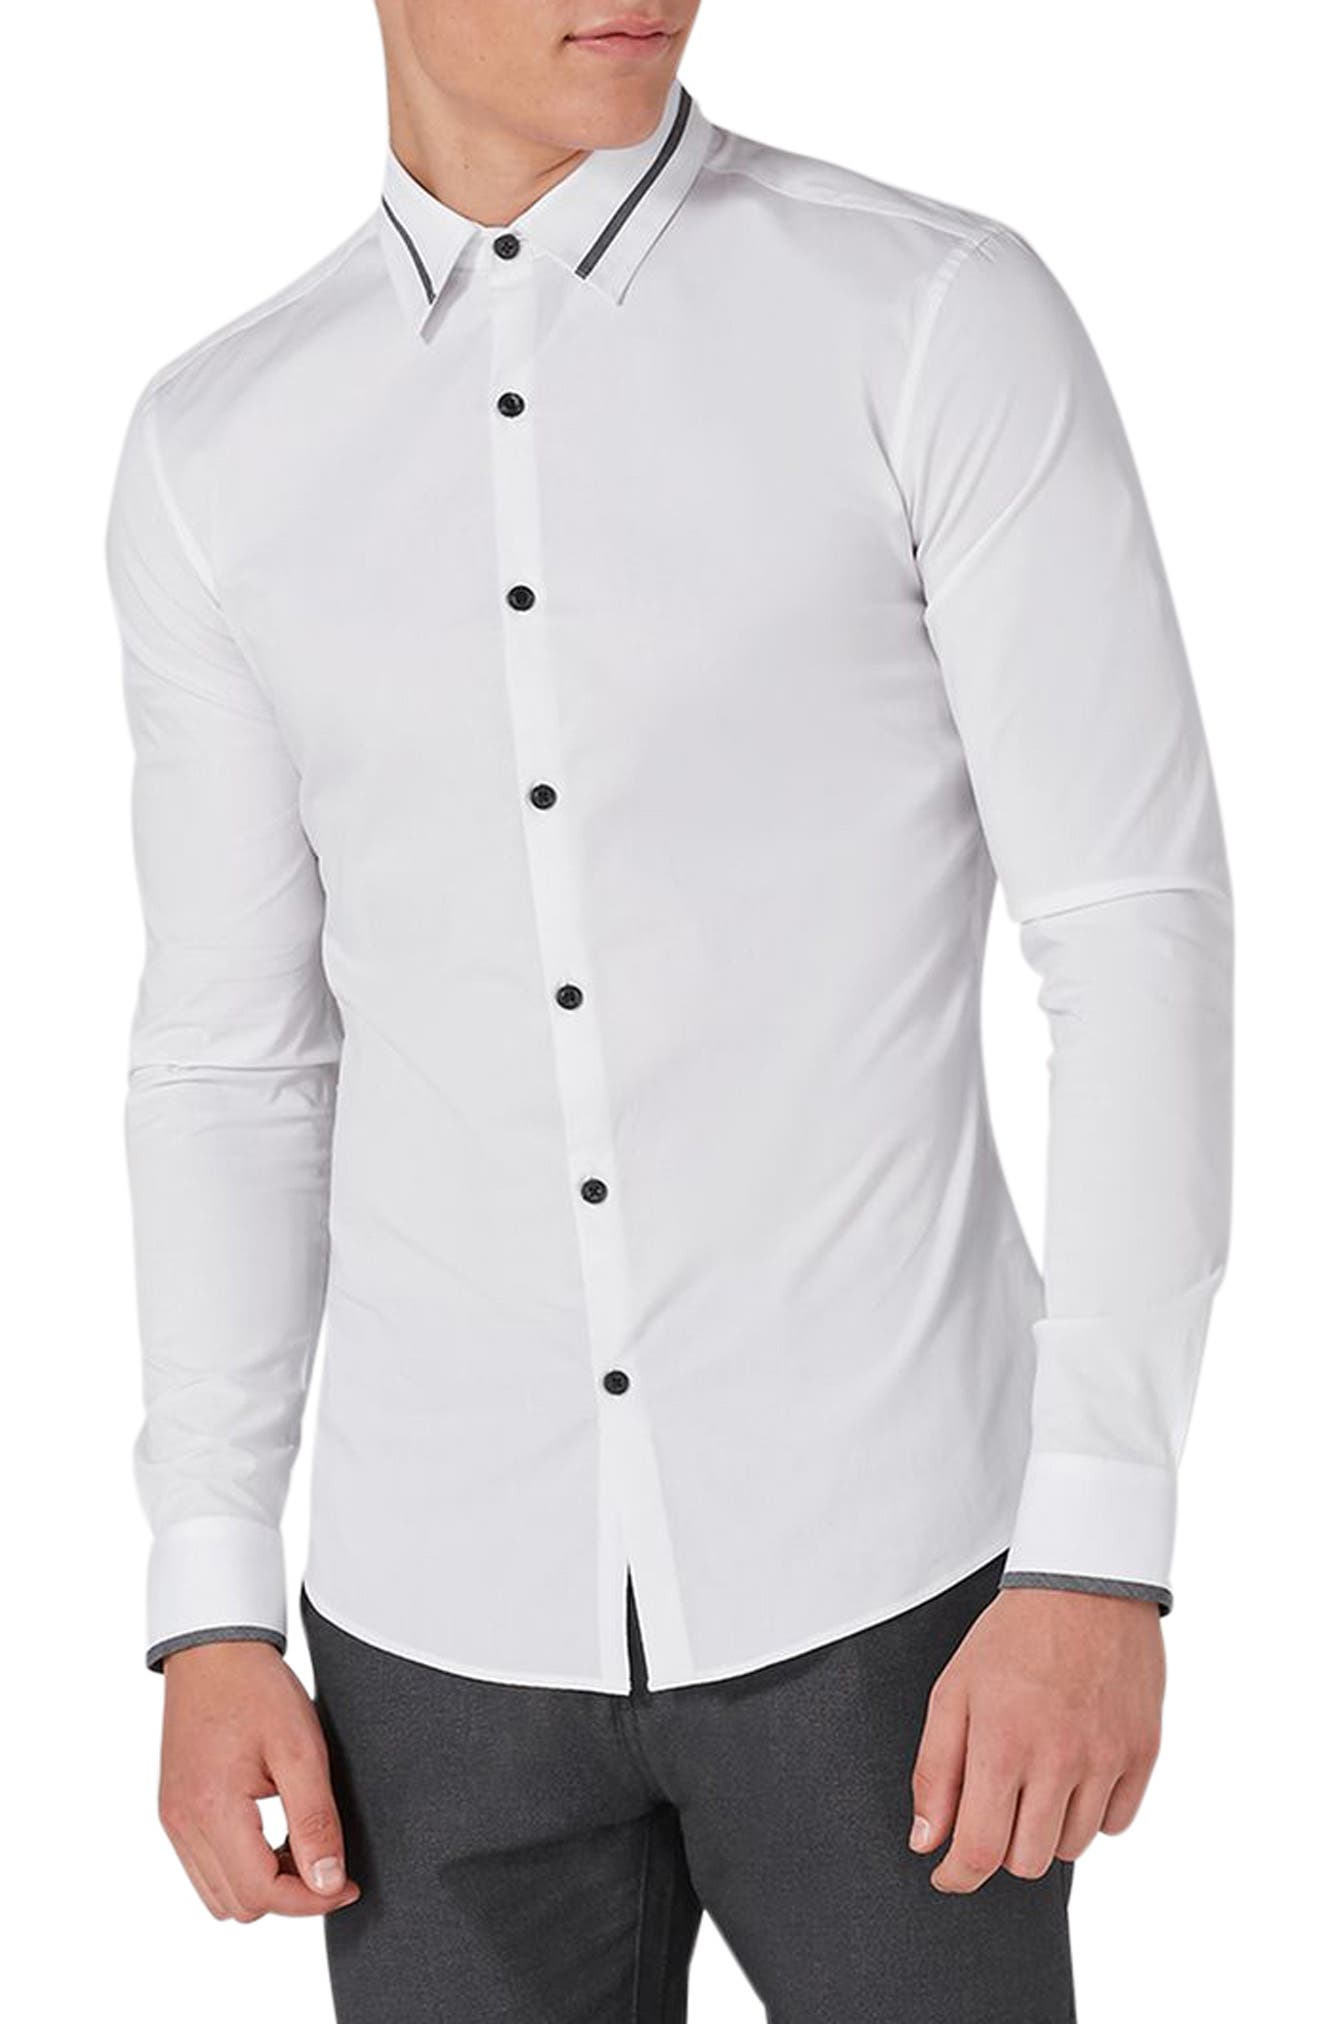 Topman Muscle Fit Contrast Trim Smart Shirt